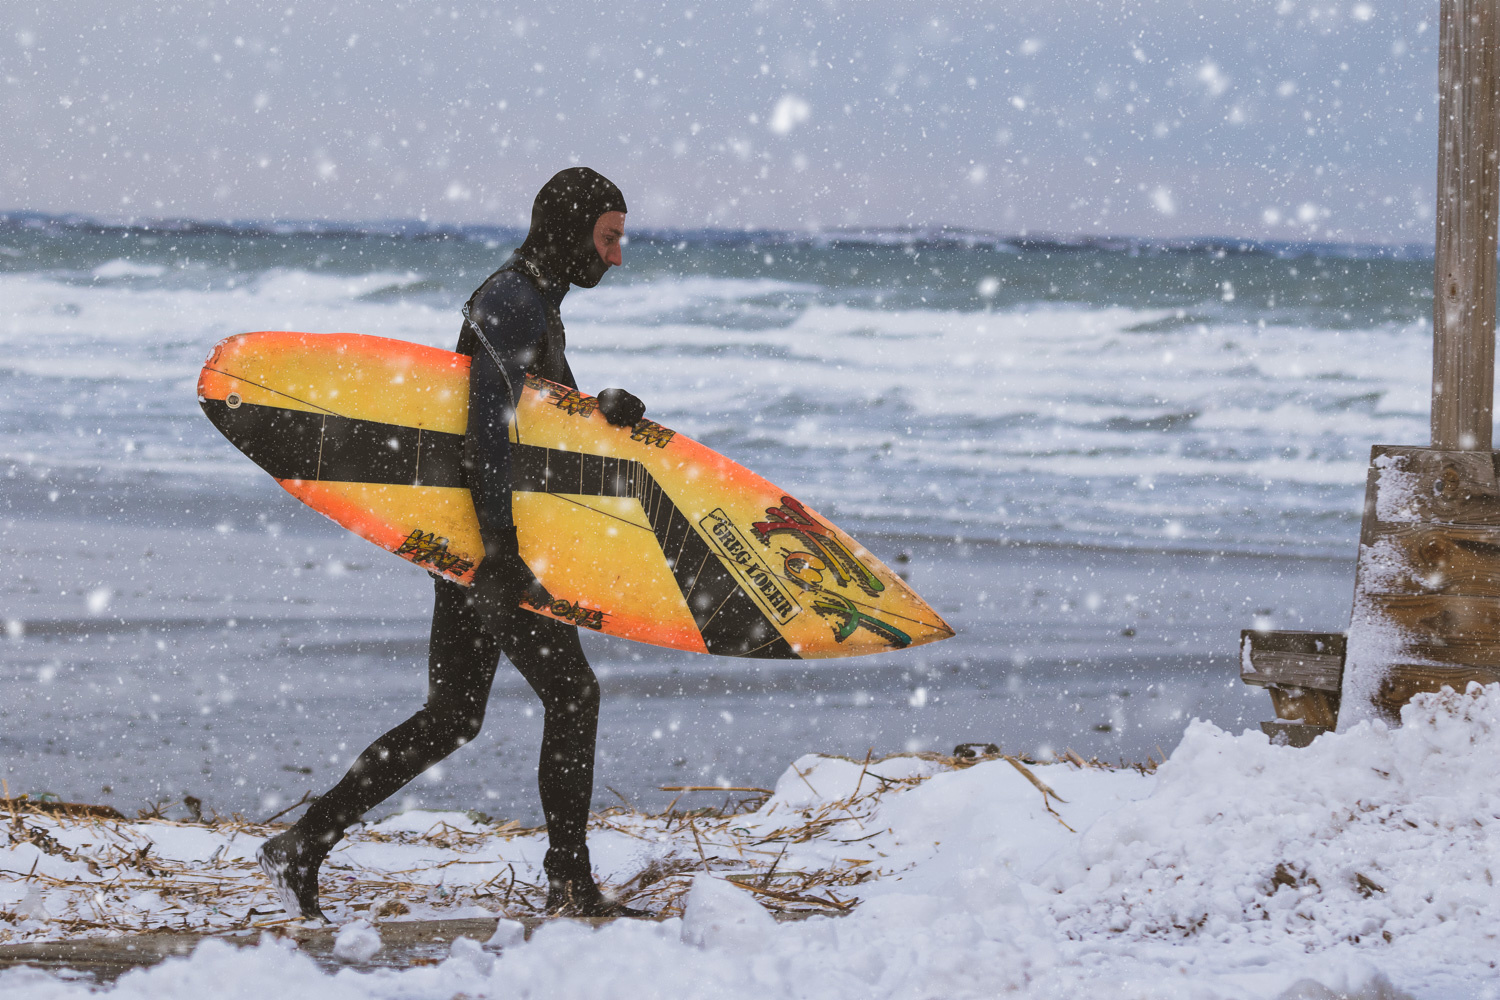 Winter Swell by Michael DeStefano